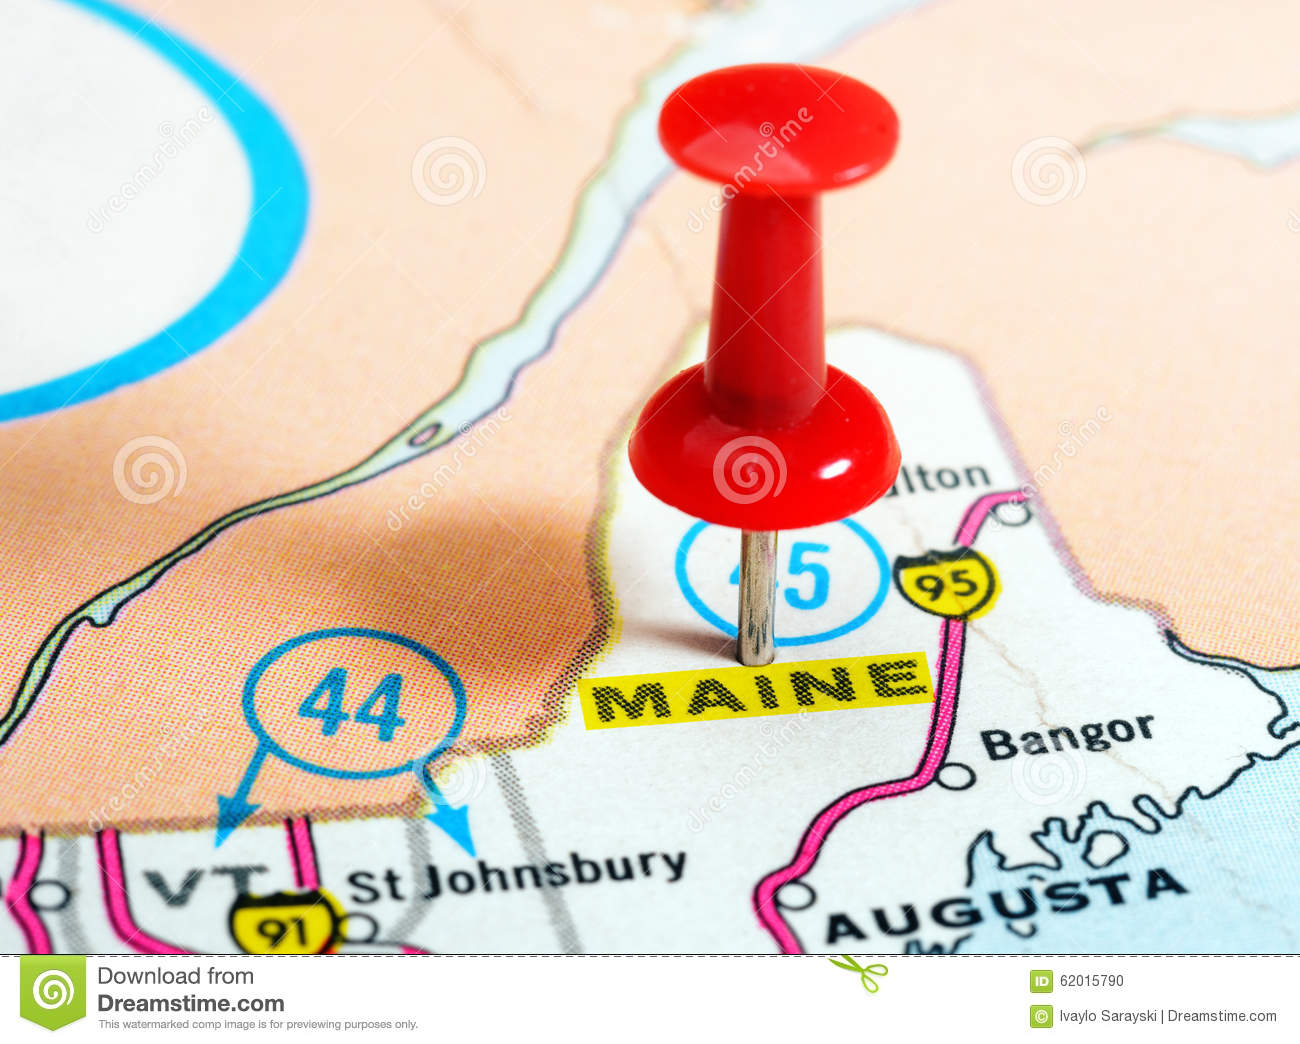 Maine State USA Map Photo Image 62015790 – Maine Travel Map